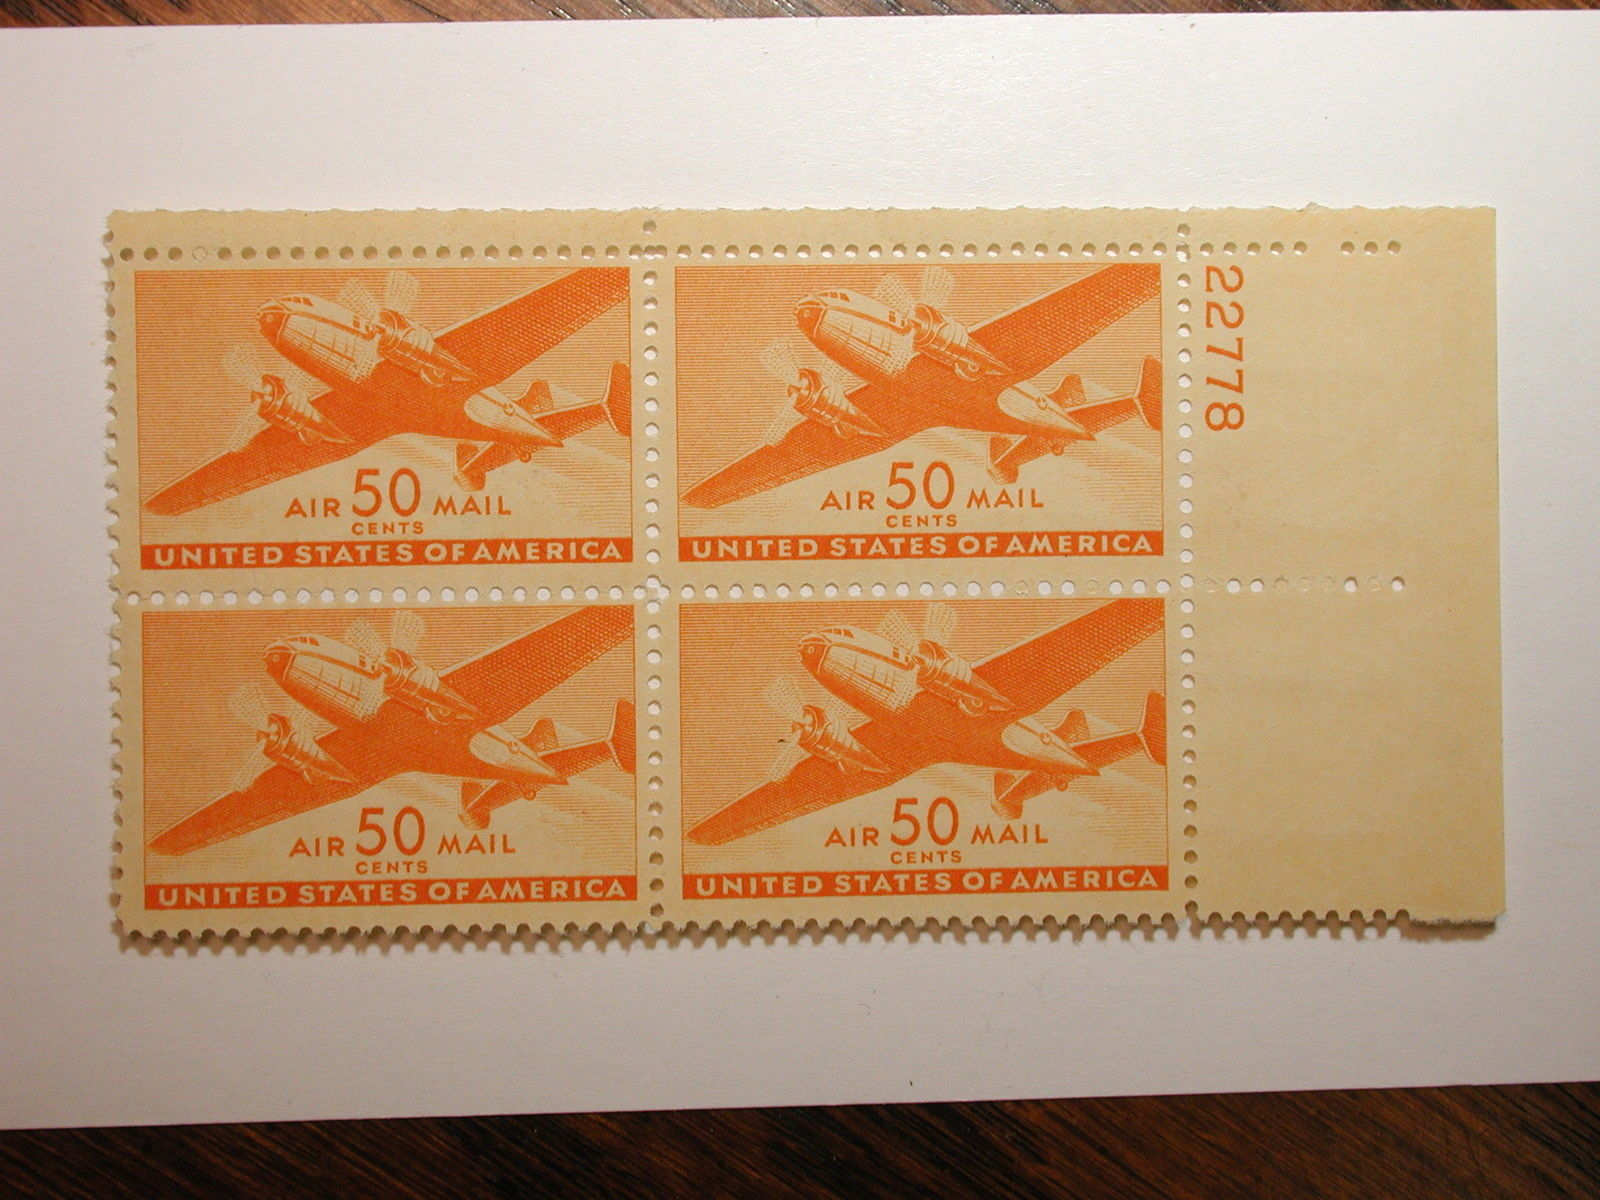 US Scott #C31 50 Cent OG NH Plate Block of 4 Airmail Stamps, Small Thins